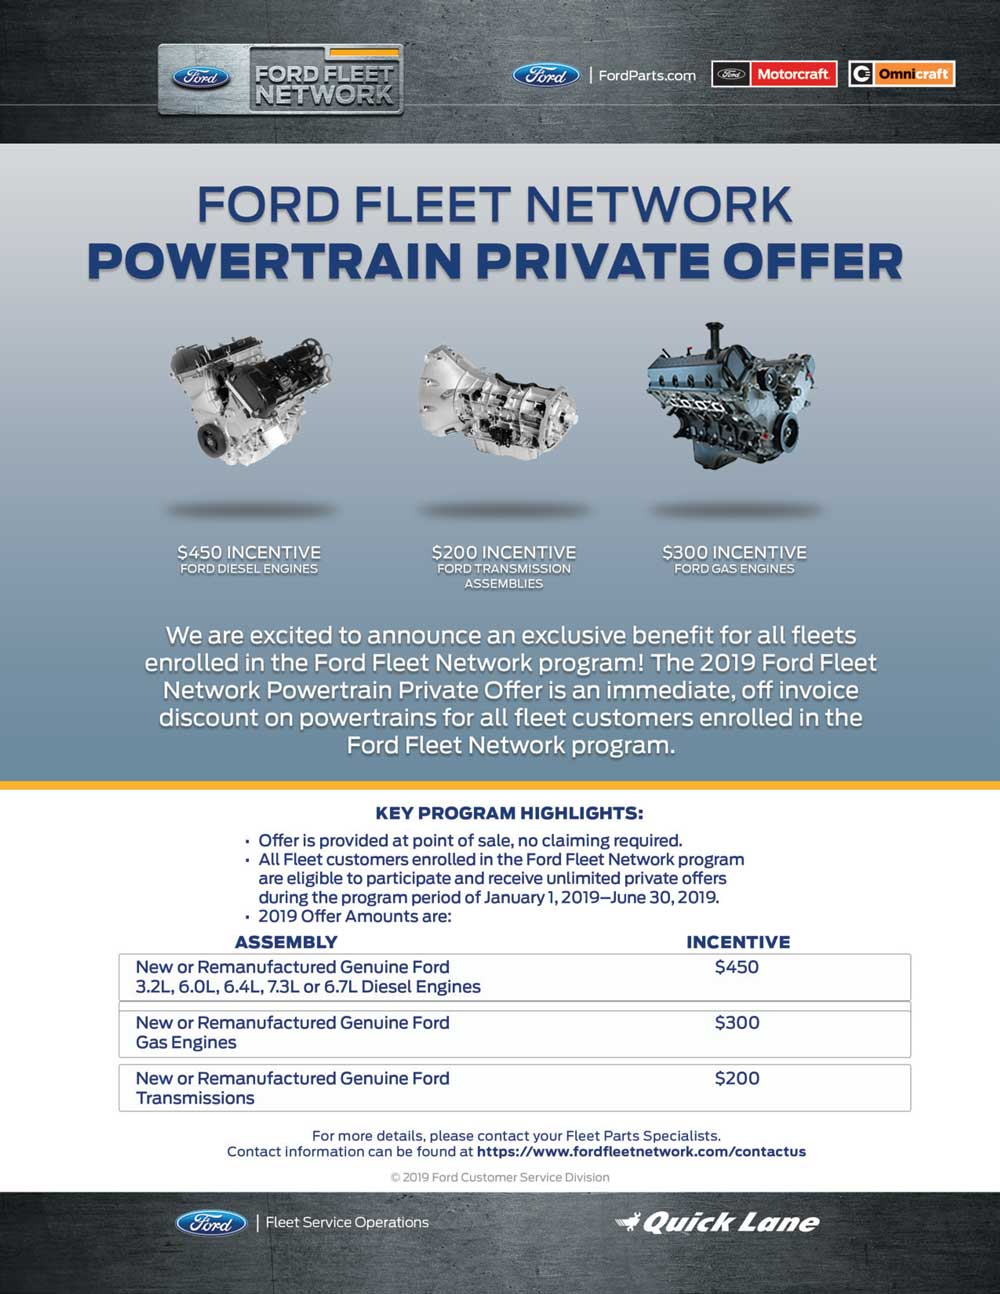 2019-FFN---Powertrain-Private-Offer-Flyer.jpg